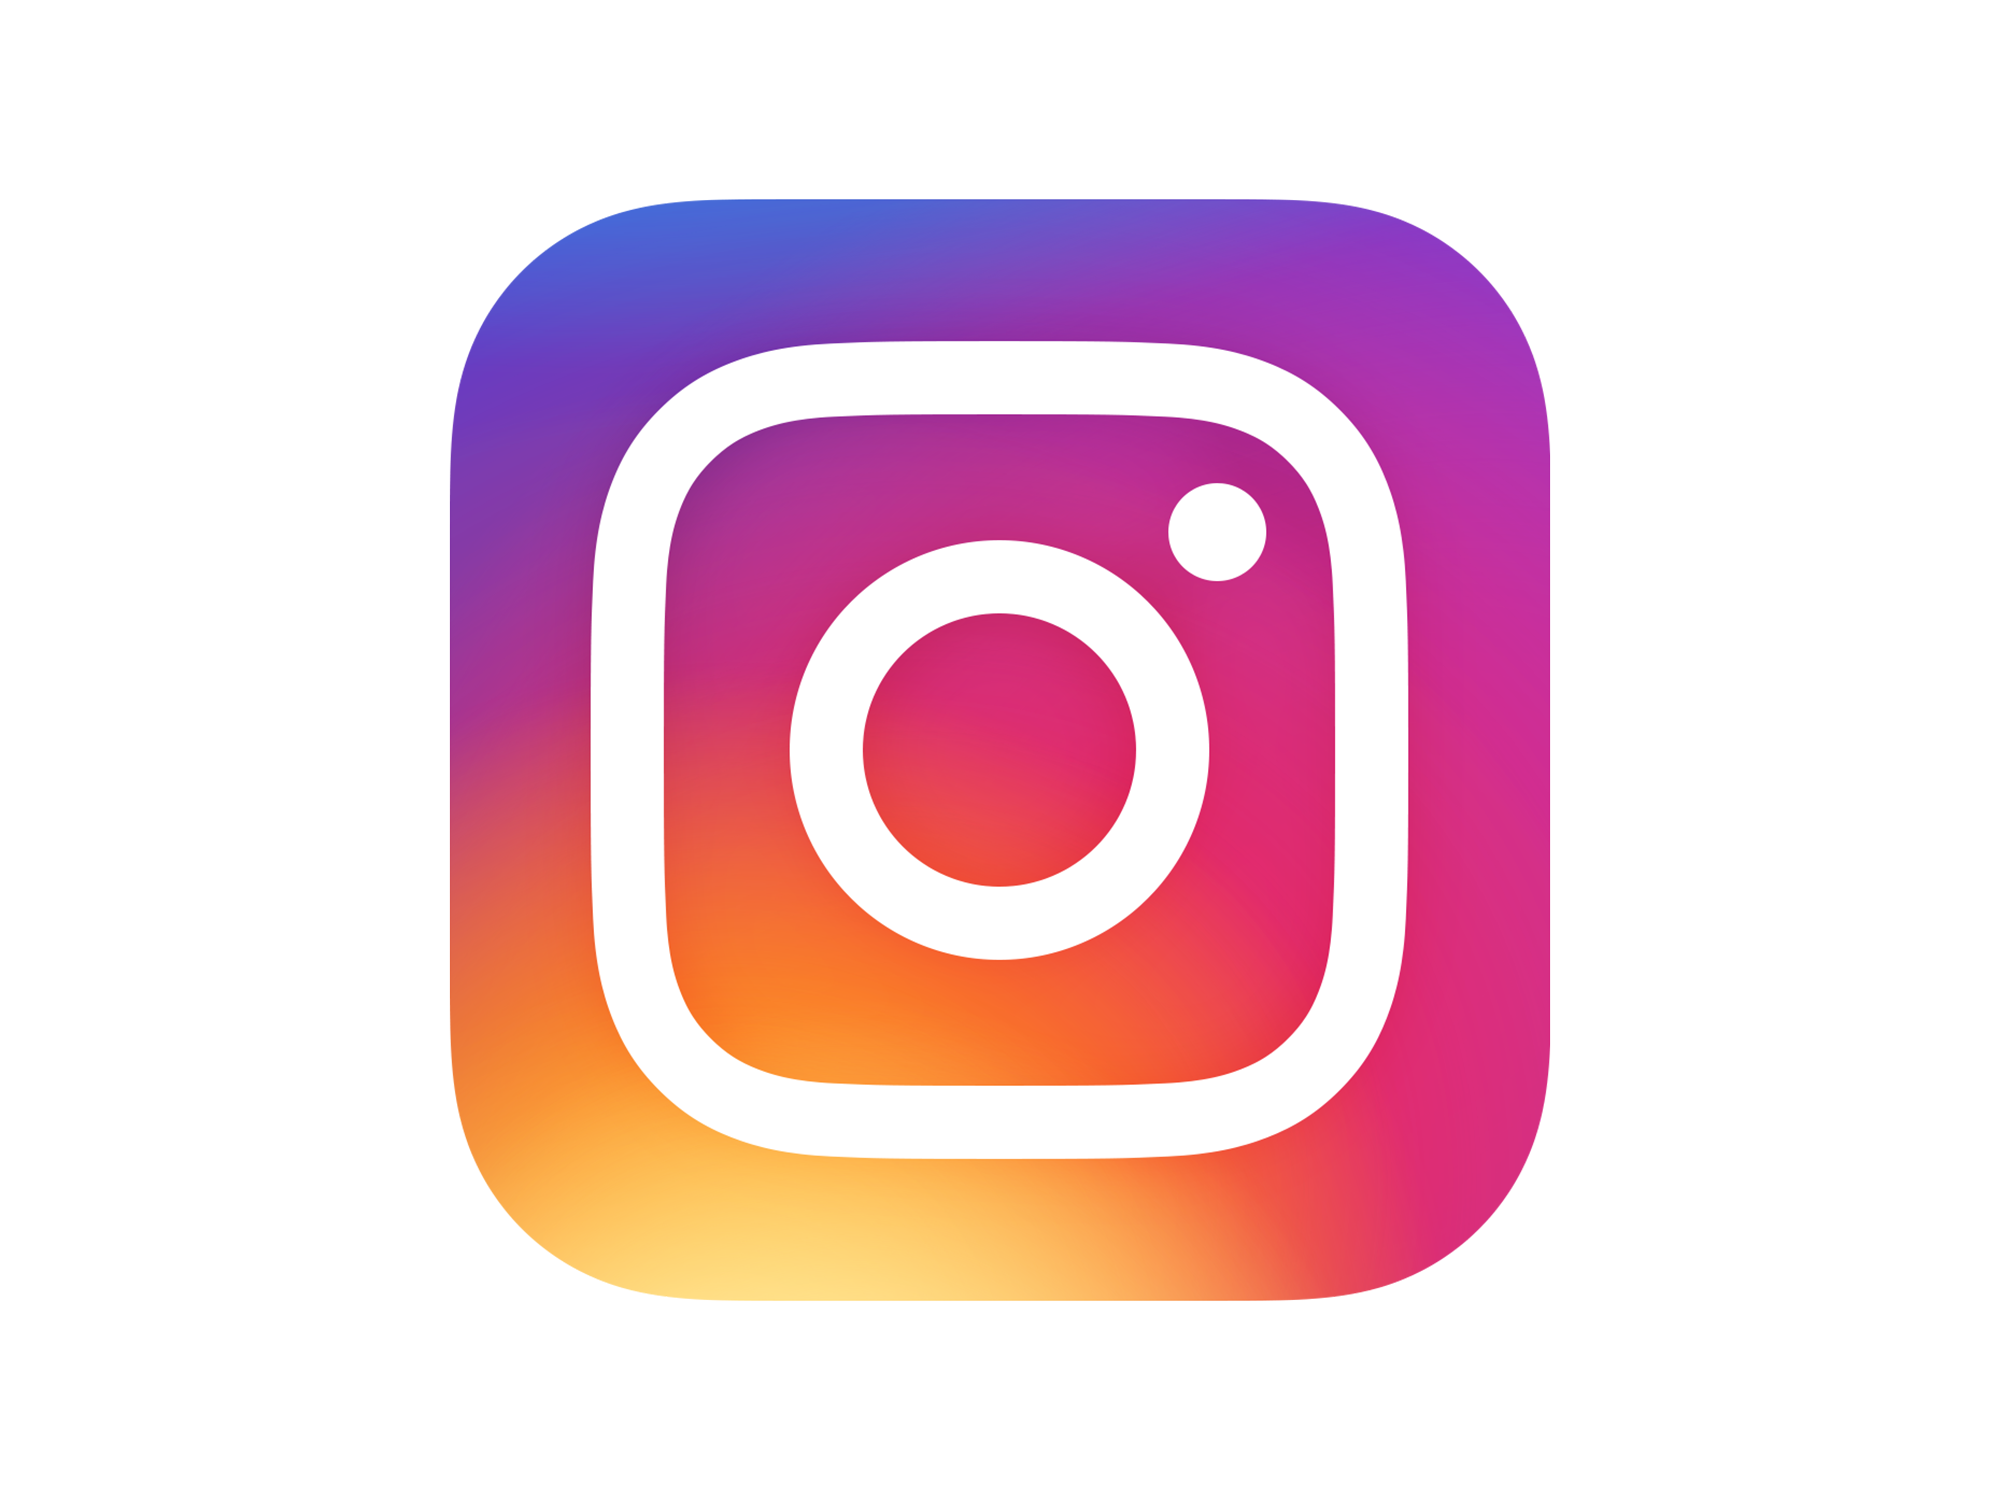 Instagram And 5 Other Logo Changes People Hated